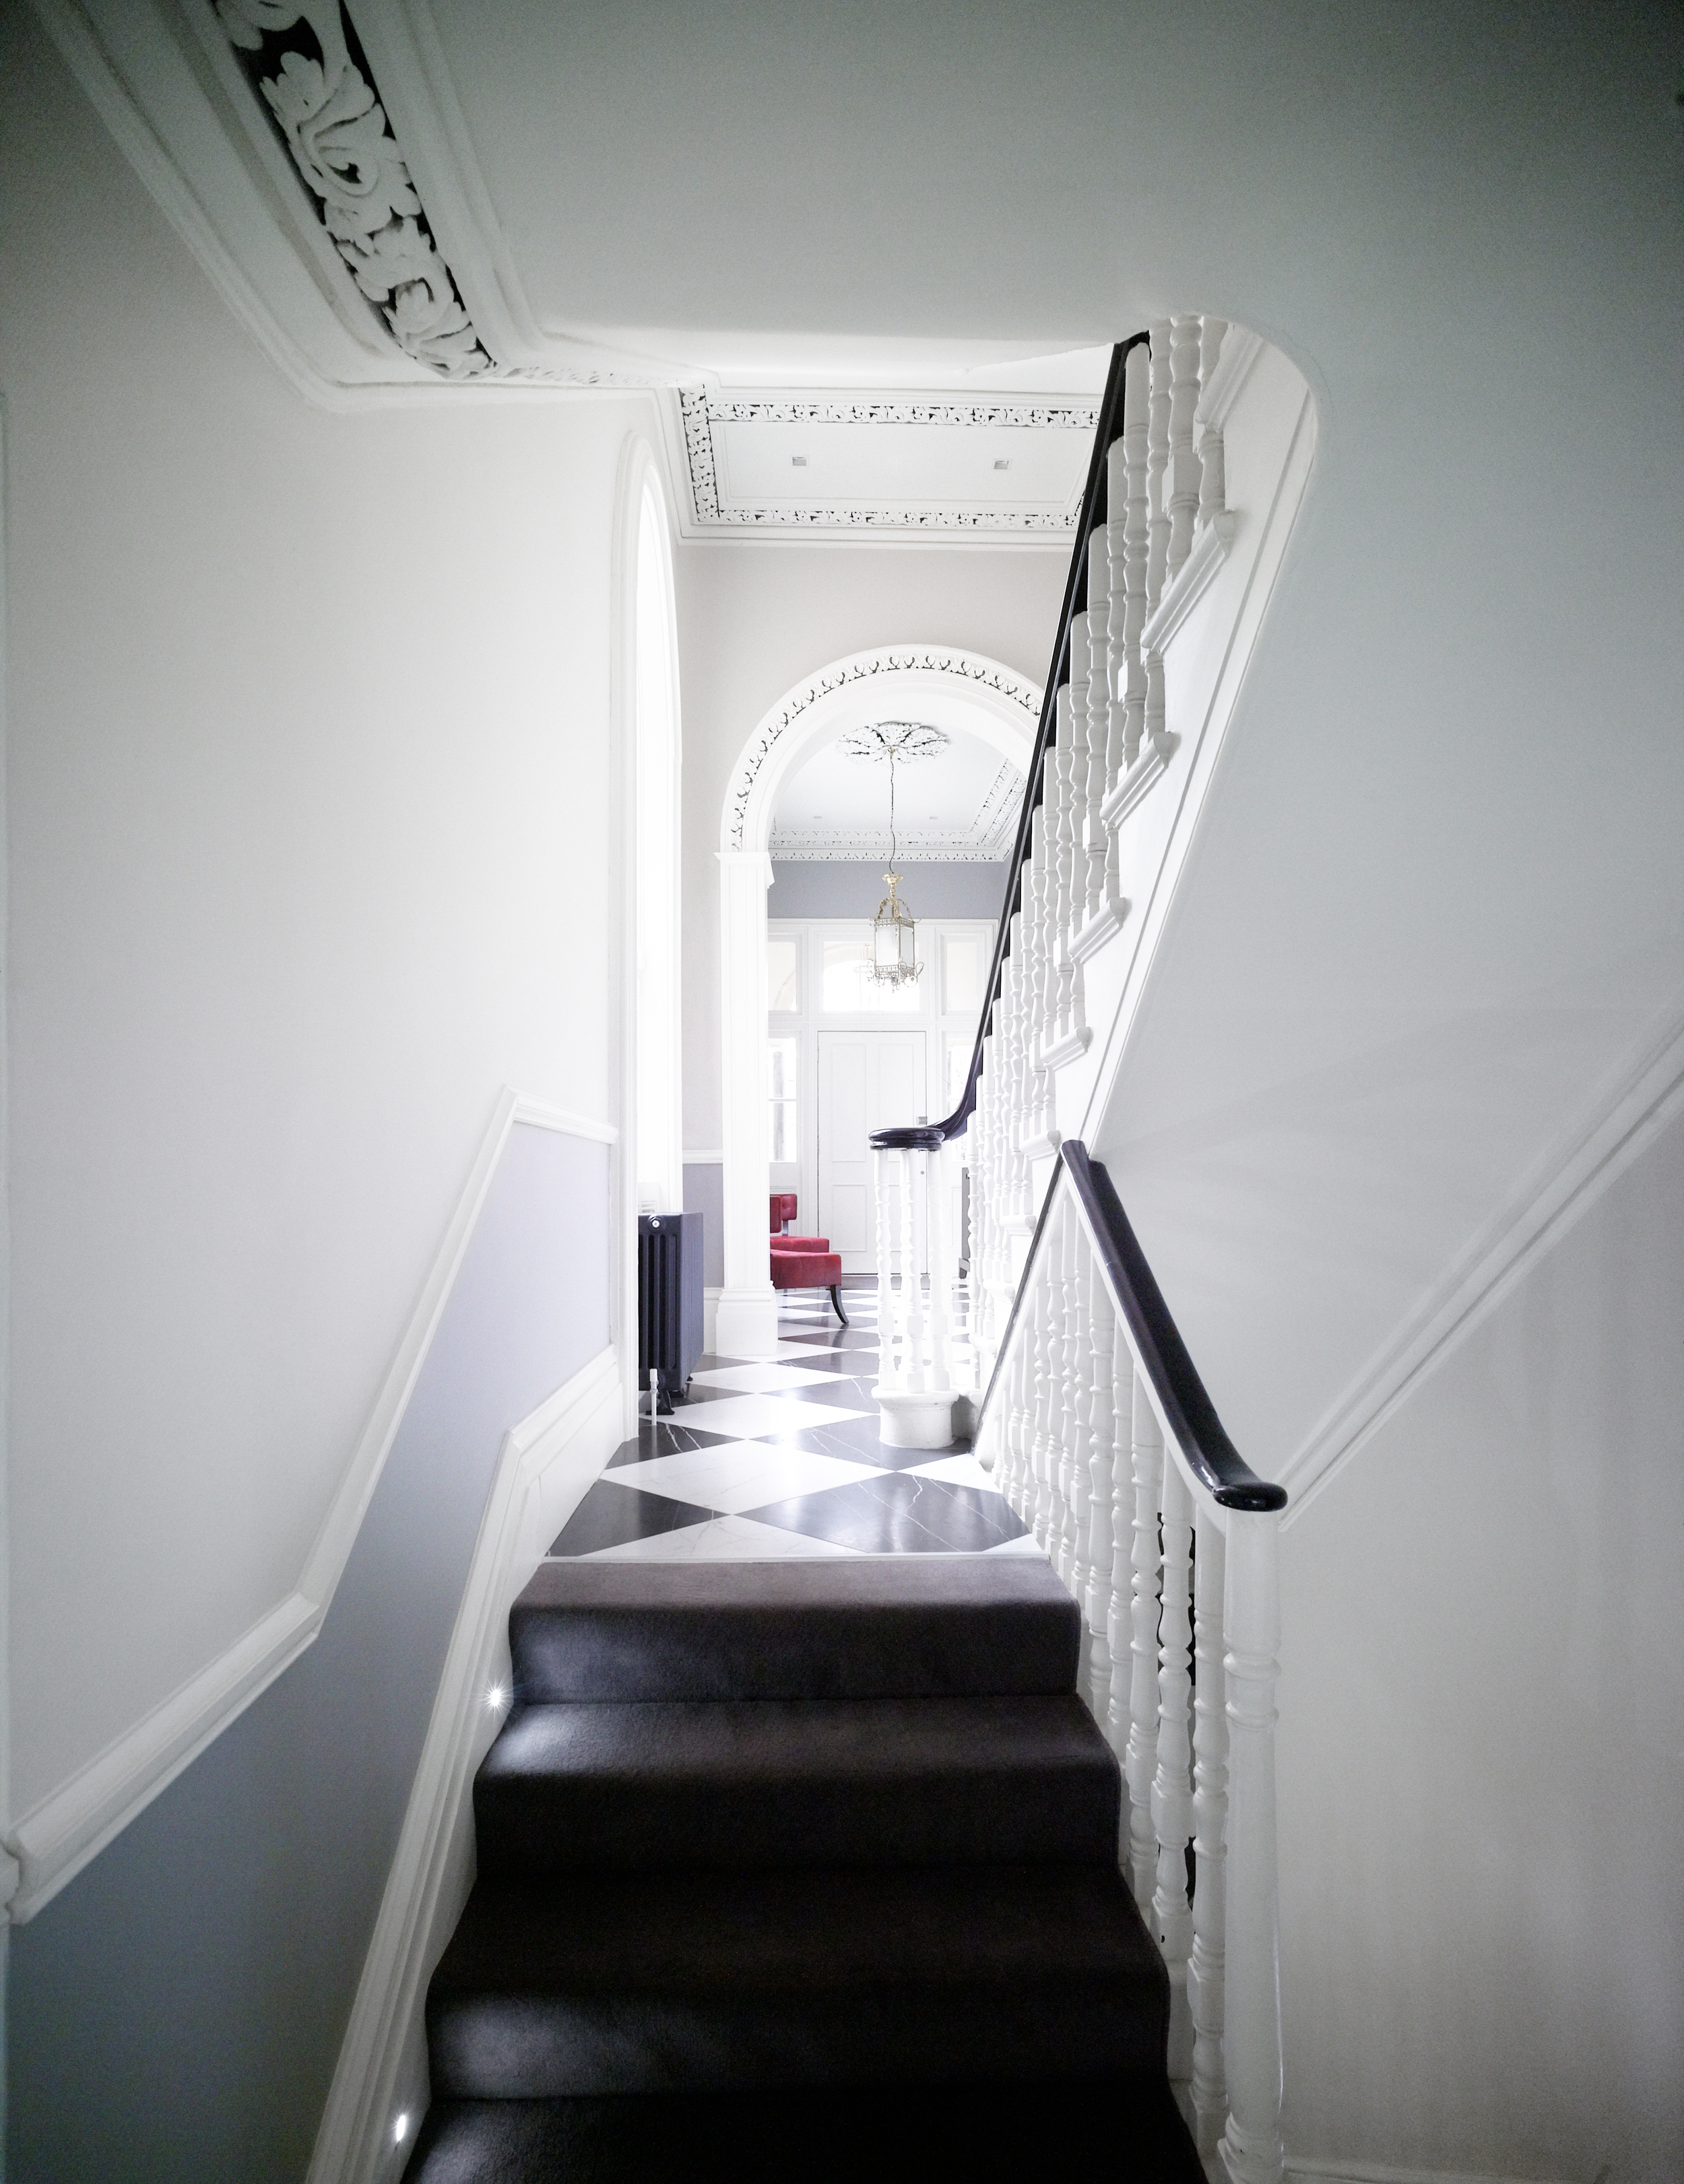 1192-05A G6P AOF STAIRS.jpg